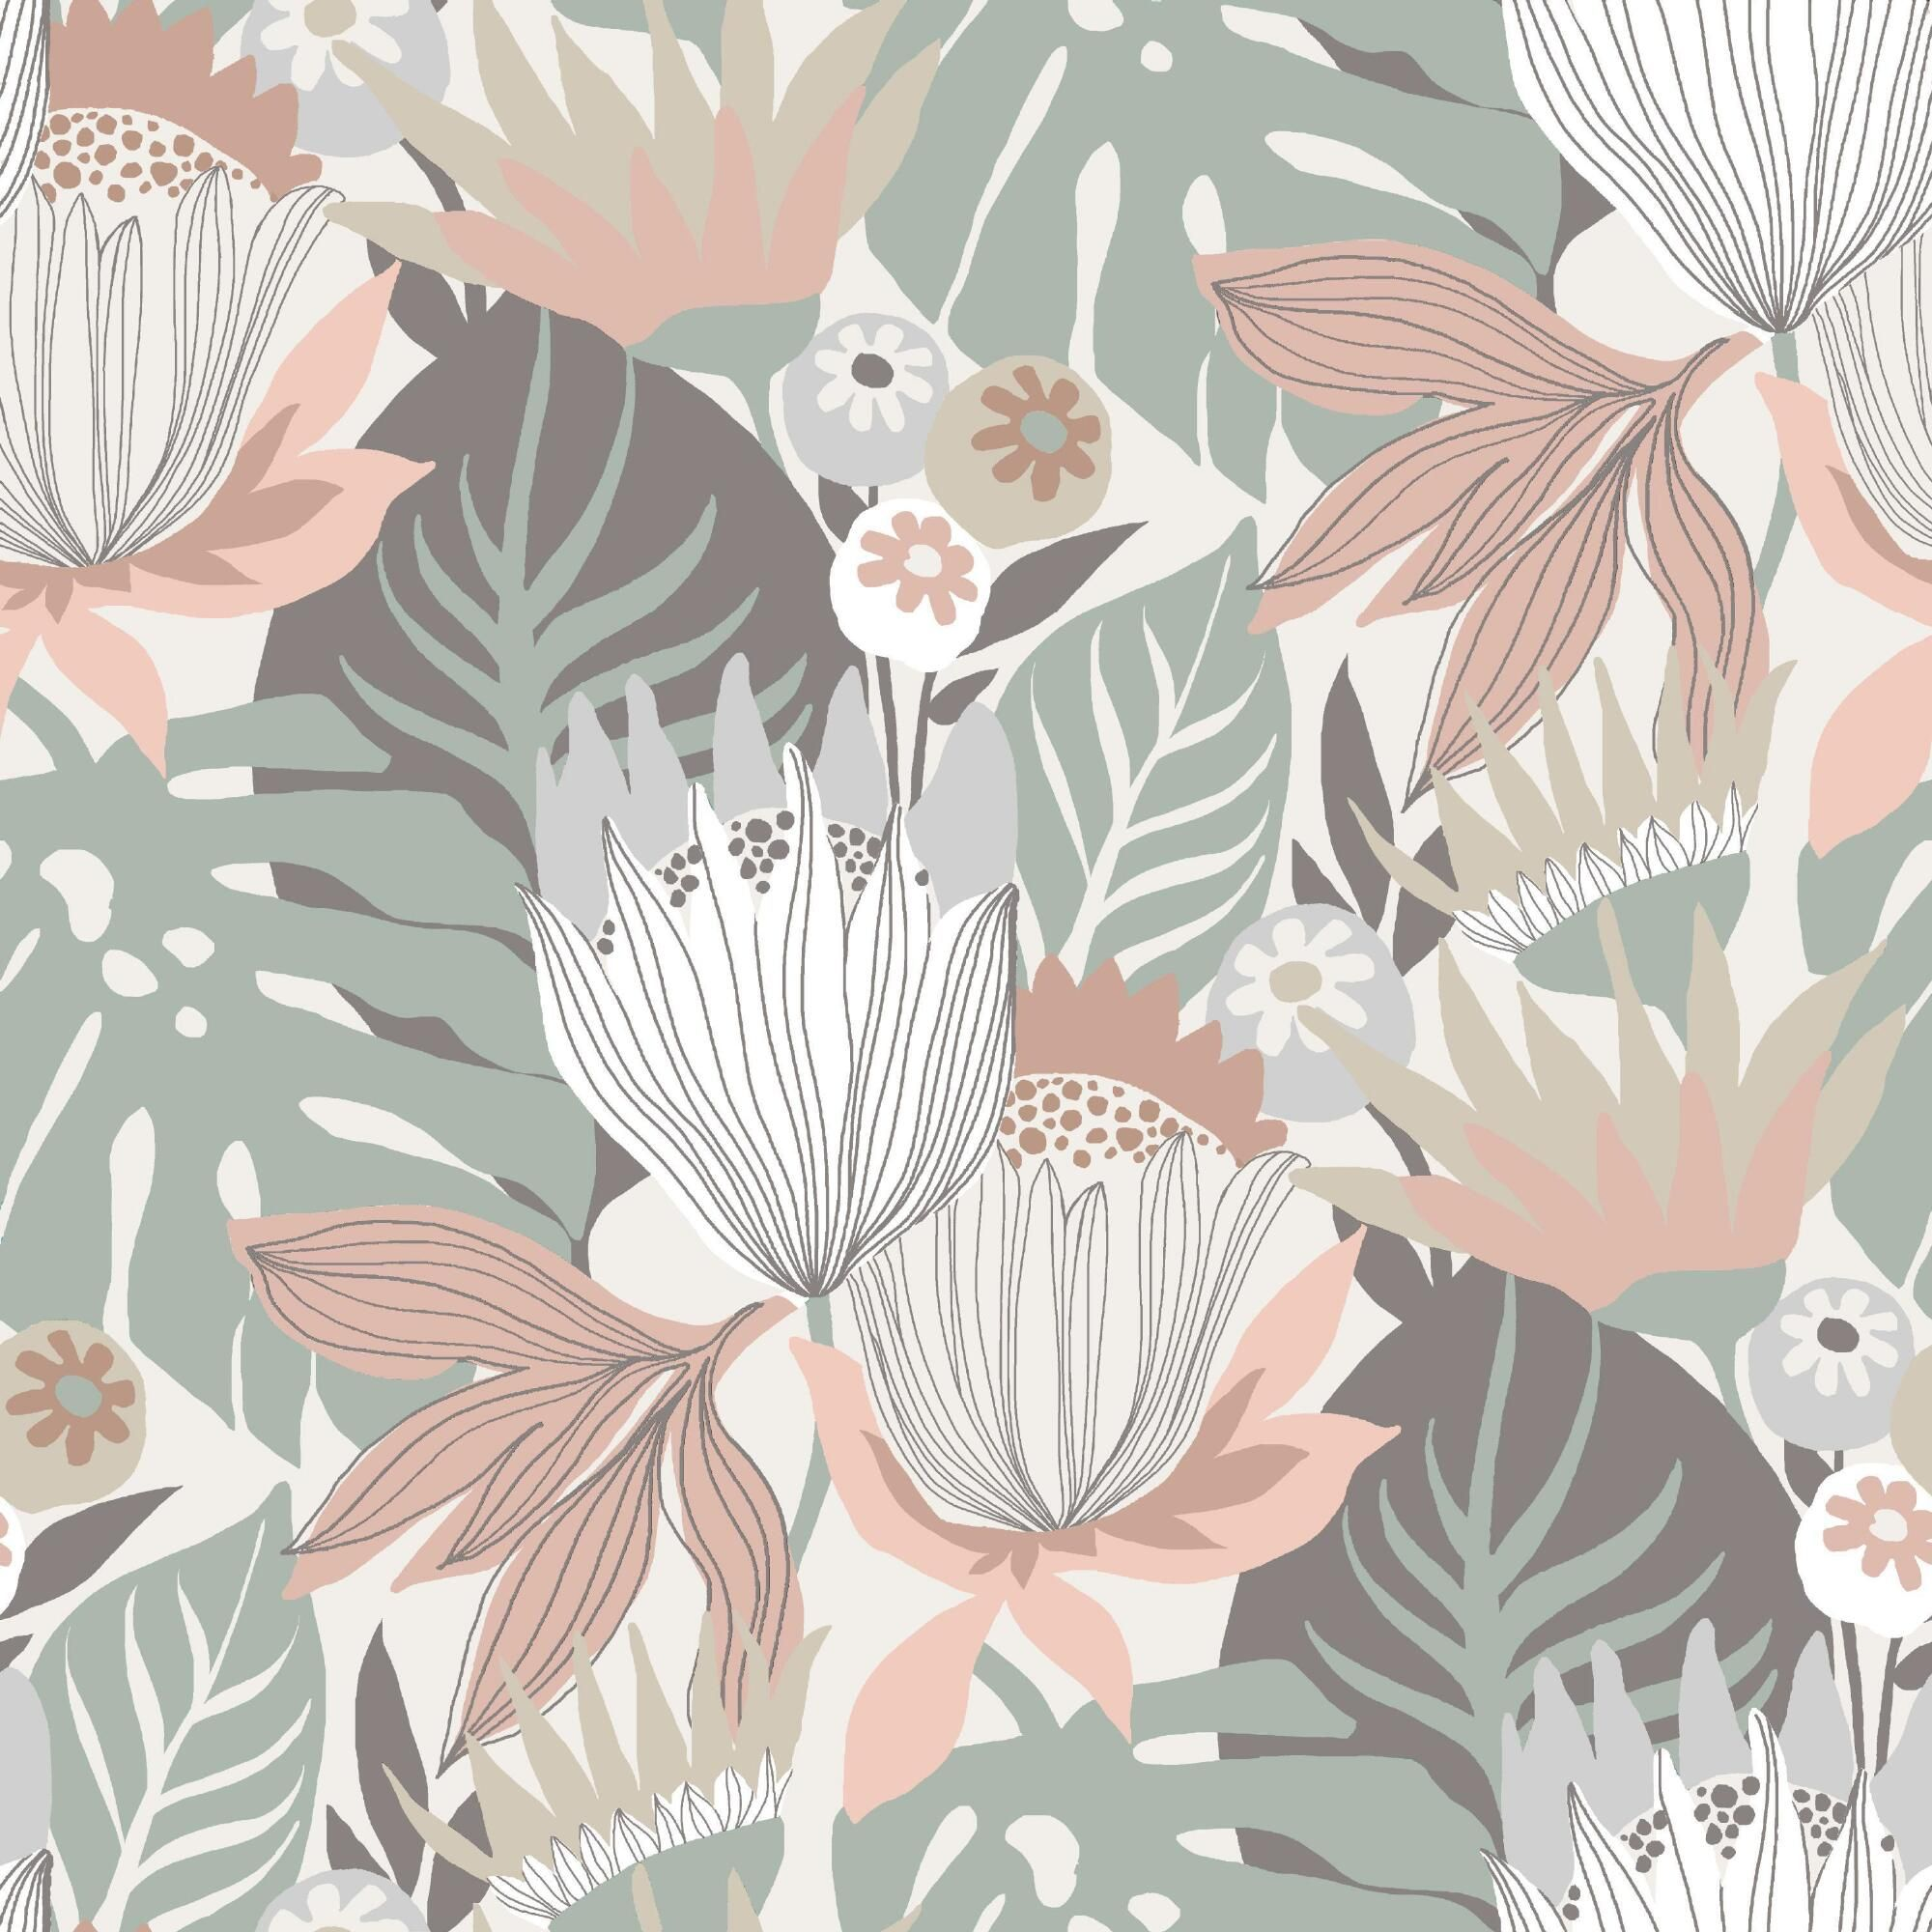 Muted Multicolor Floral Tropics Peel And Stick Wallpaper By World Market Peel And Stick Wallpaper Wallpaper Tropical Leaves